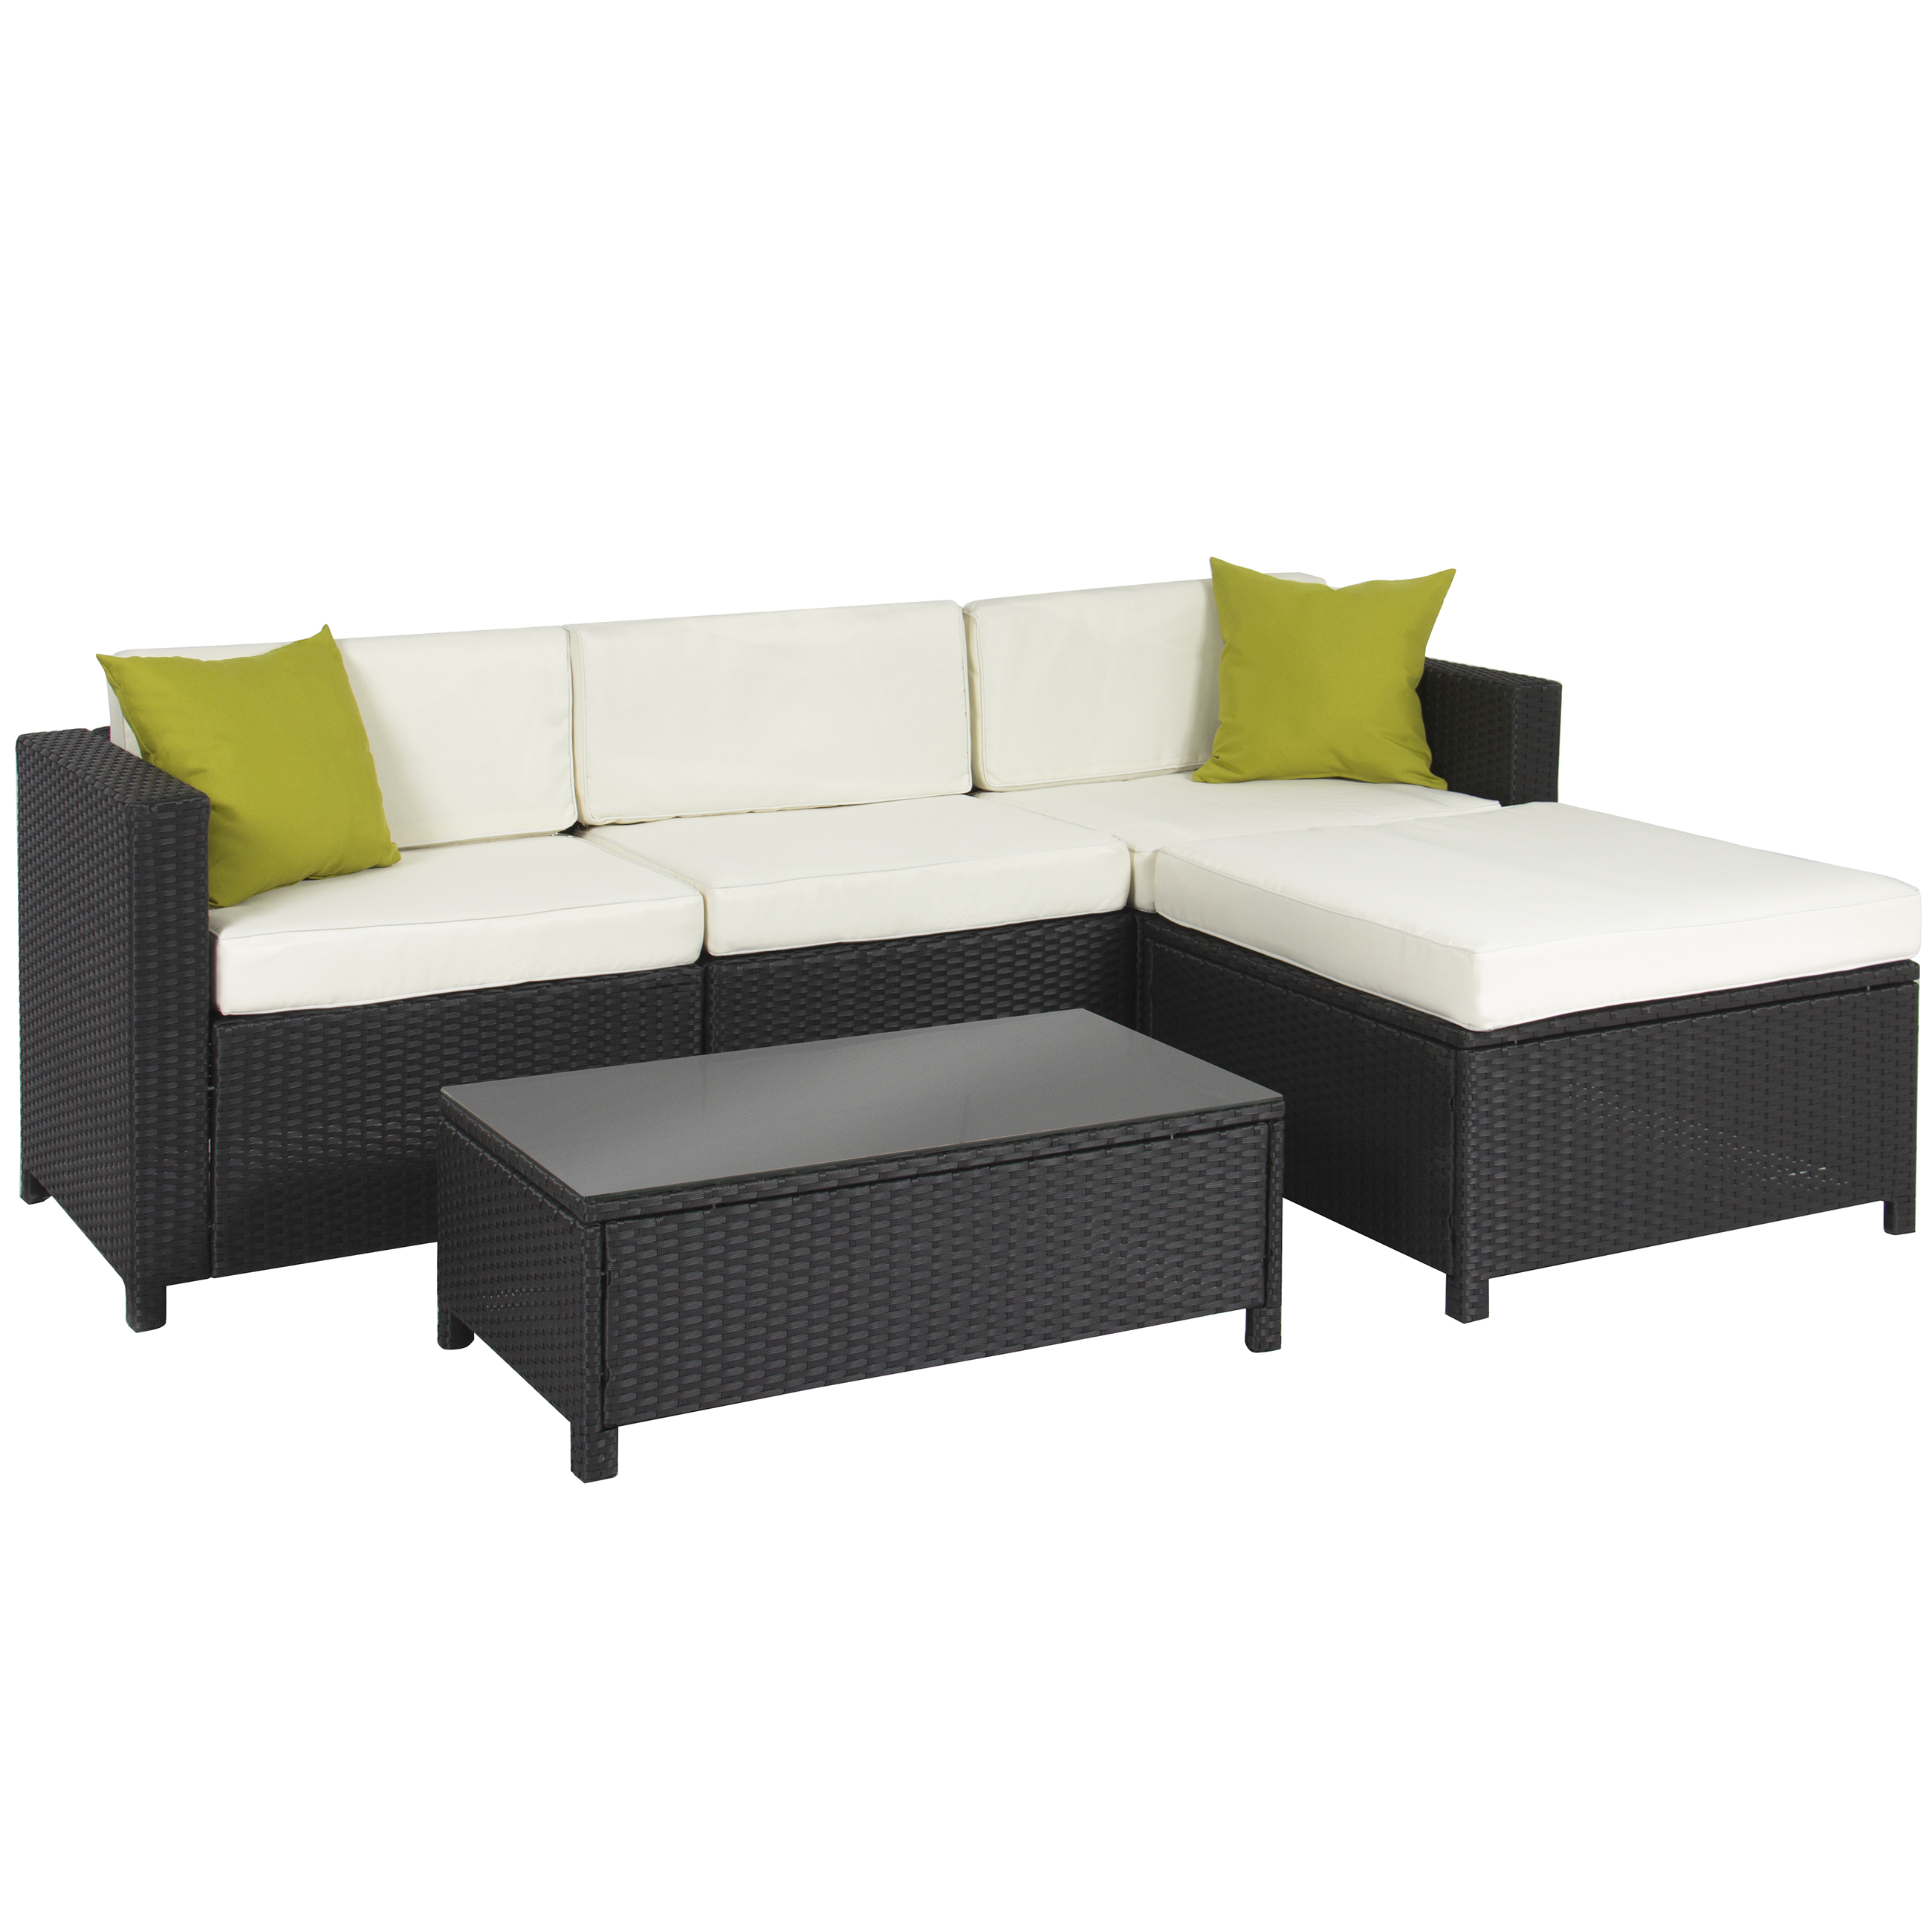 Best Choice Products 5-Piece Modular Wicker Patio Sectional Set w ...